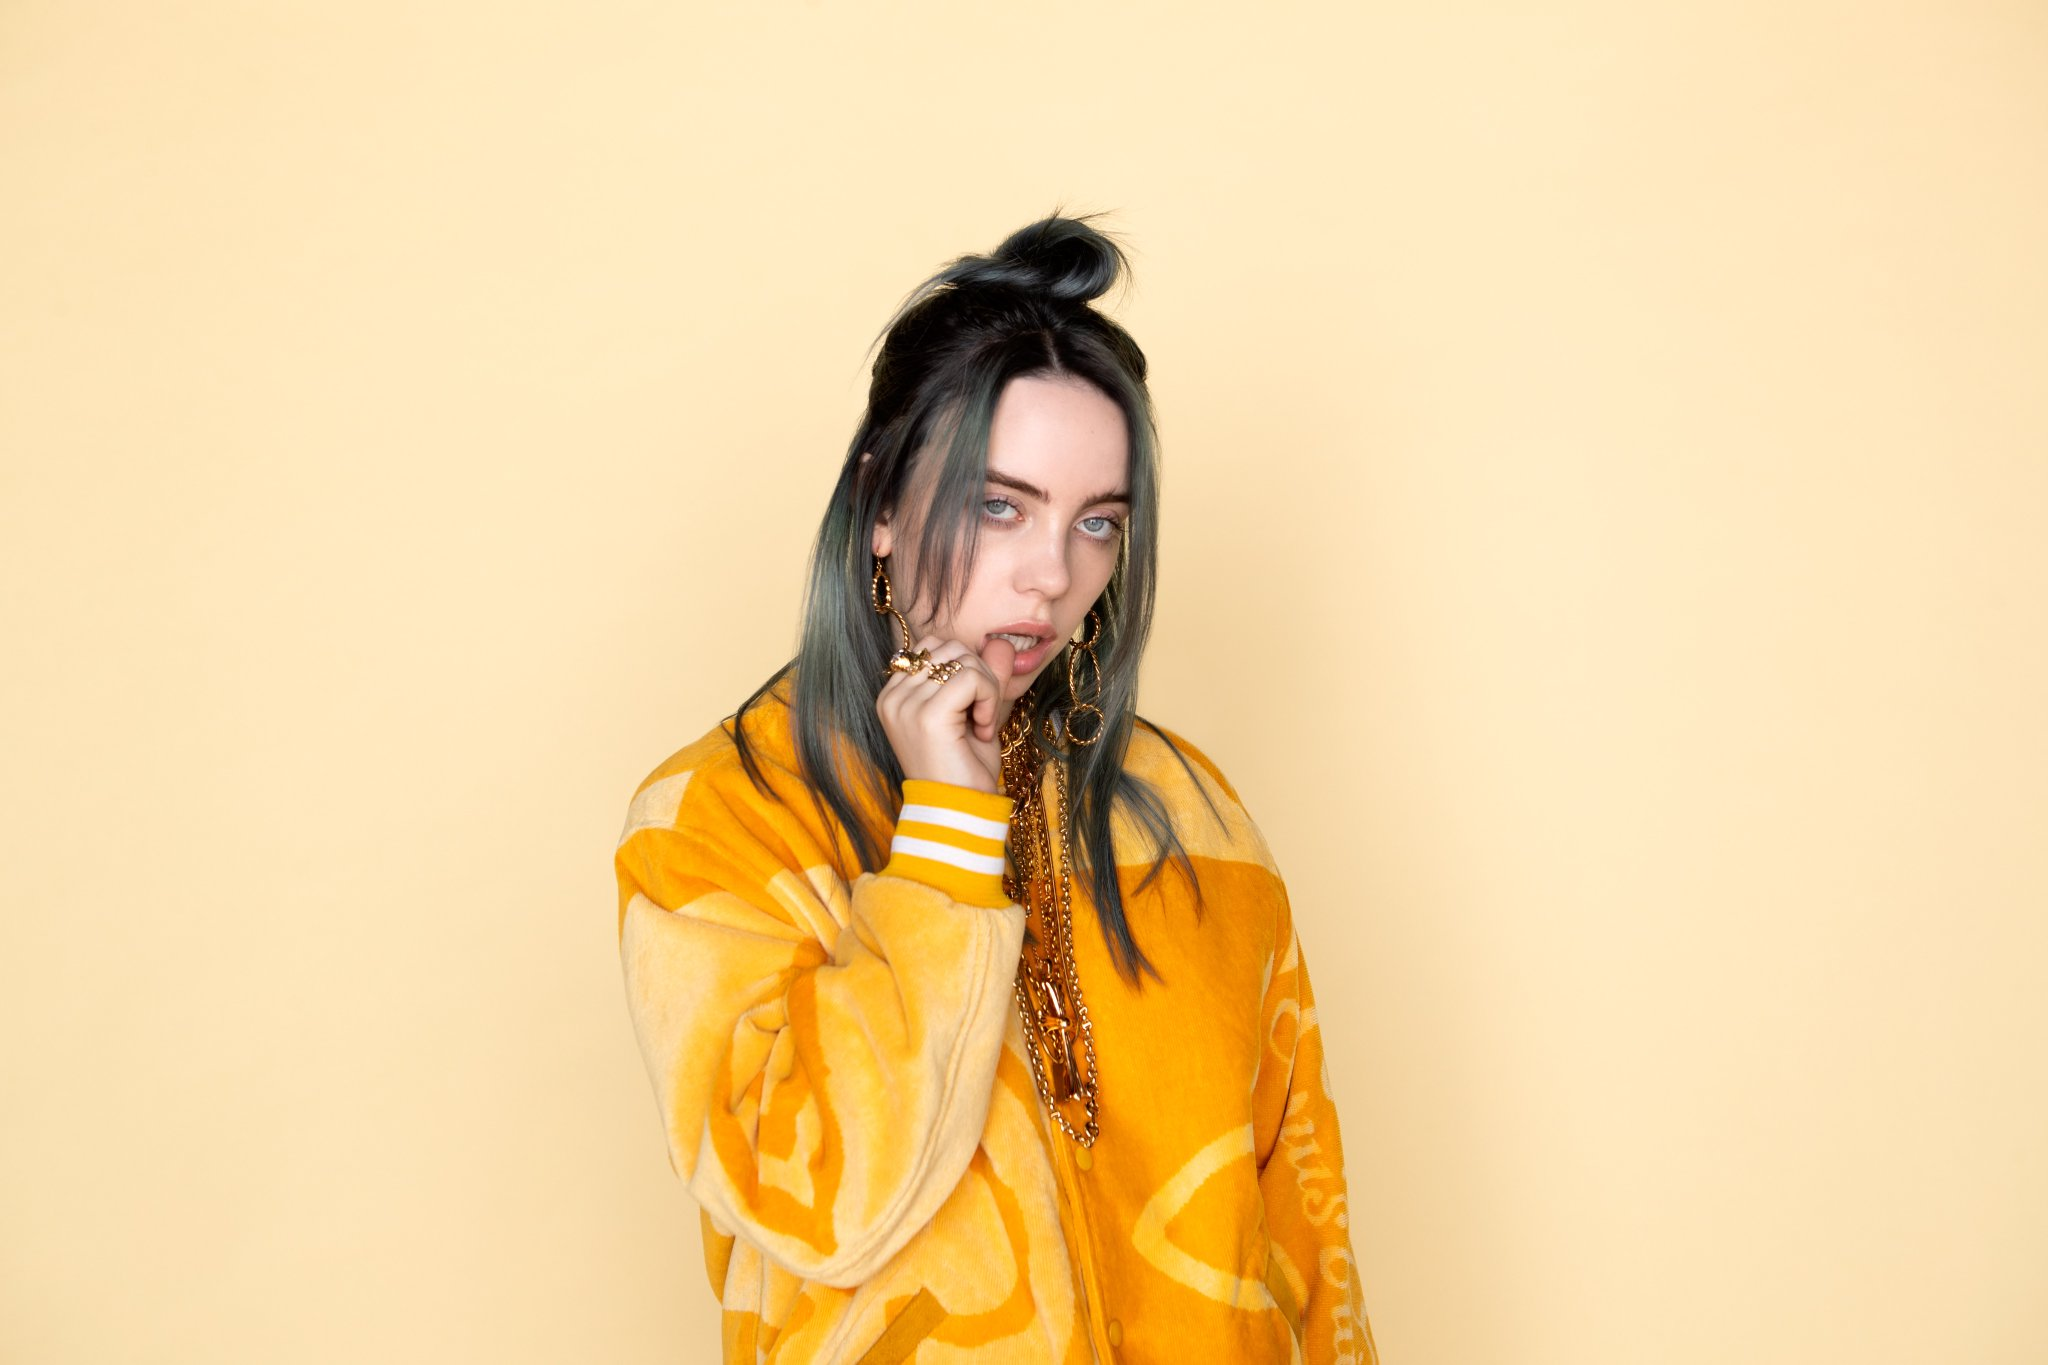 Artistas del Lollapalooza 2020 - Billie Eilish